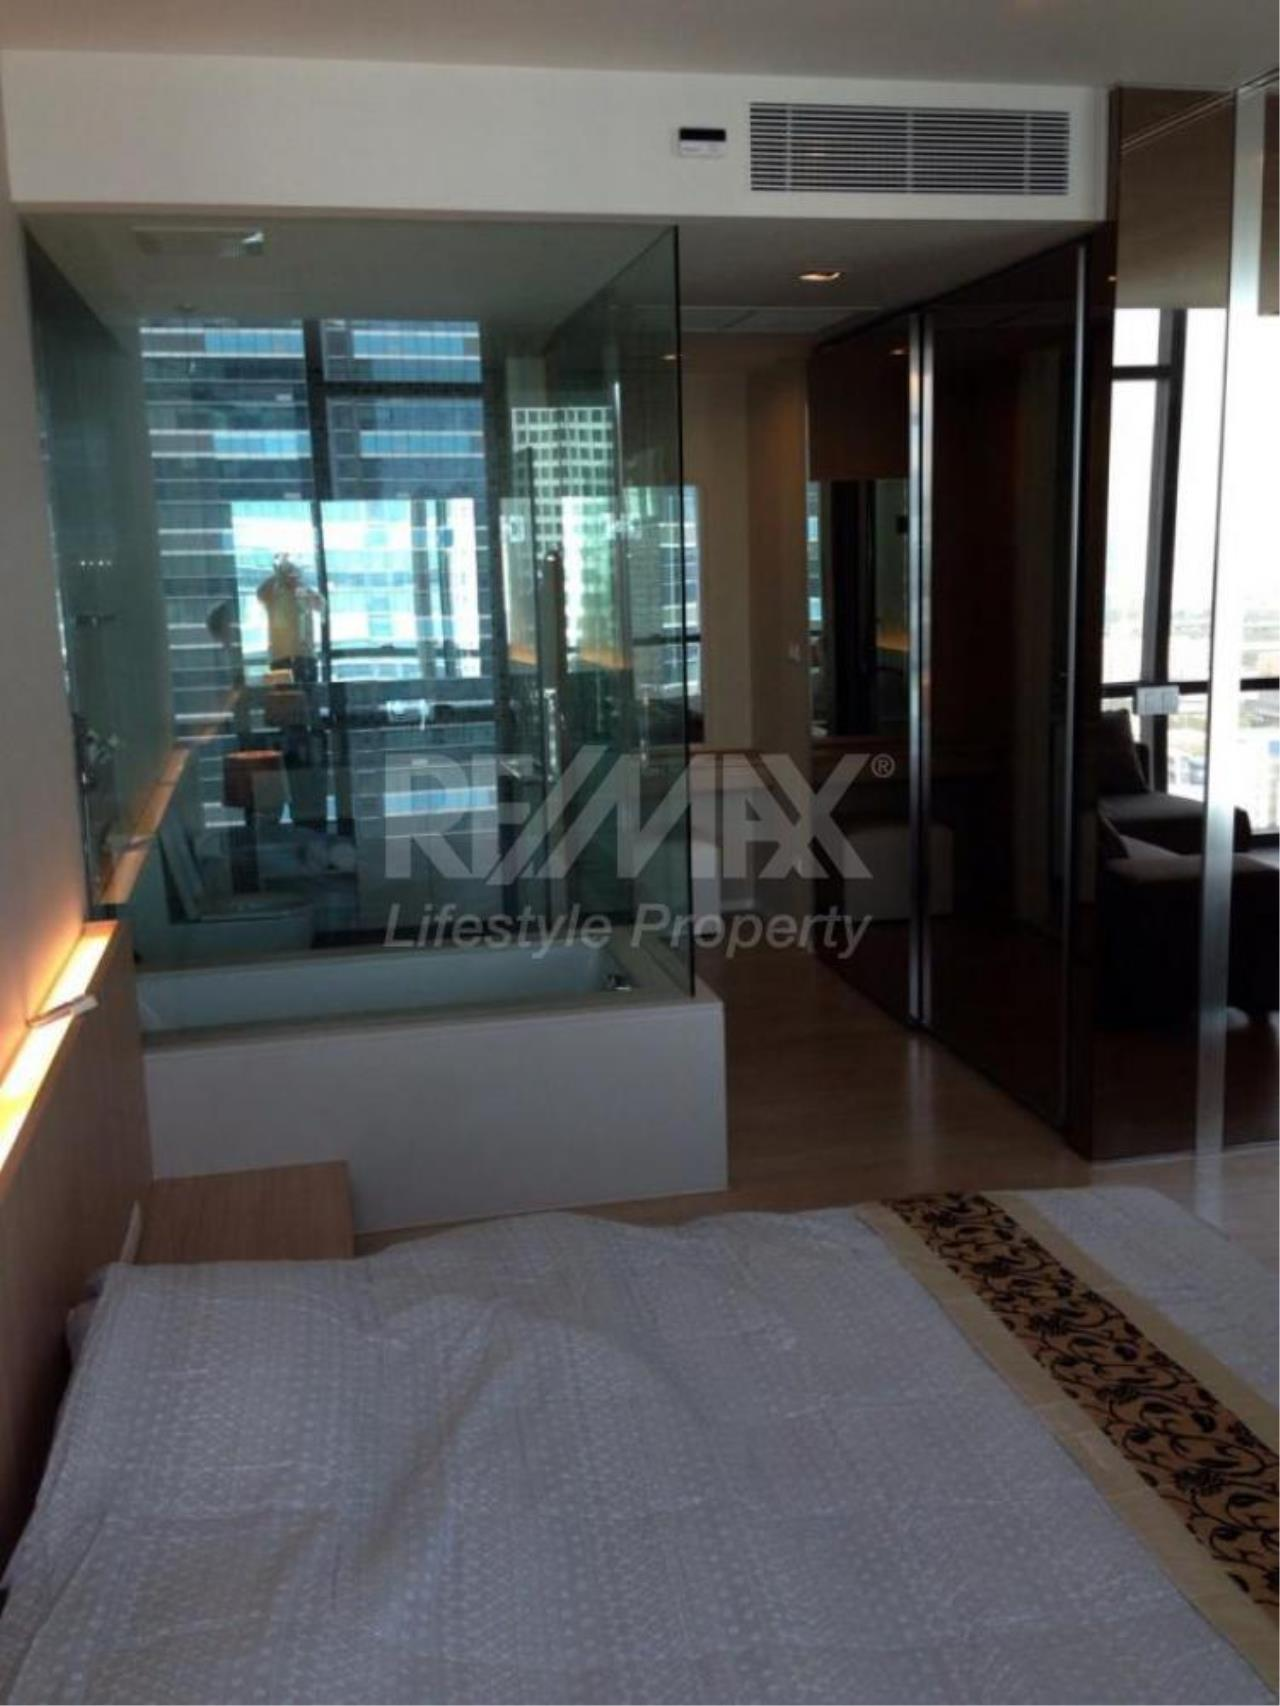 RE/MAX LifeStyle Property Agency's The Room Sukhumvit 21 13